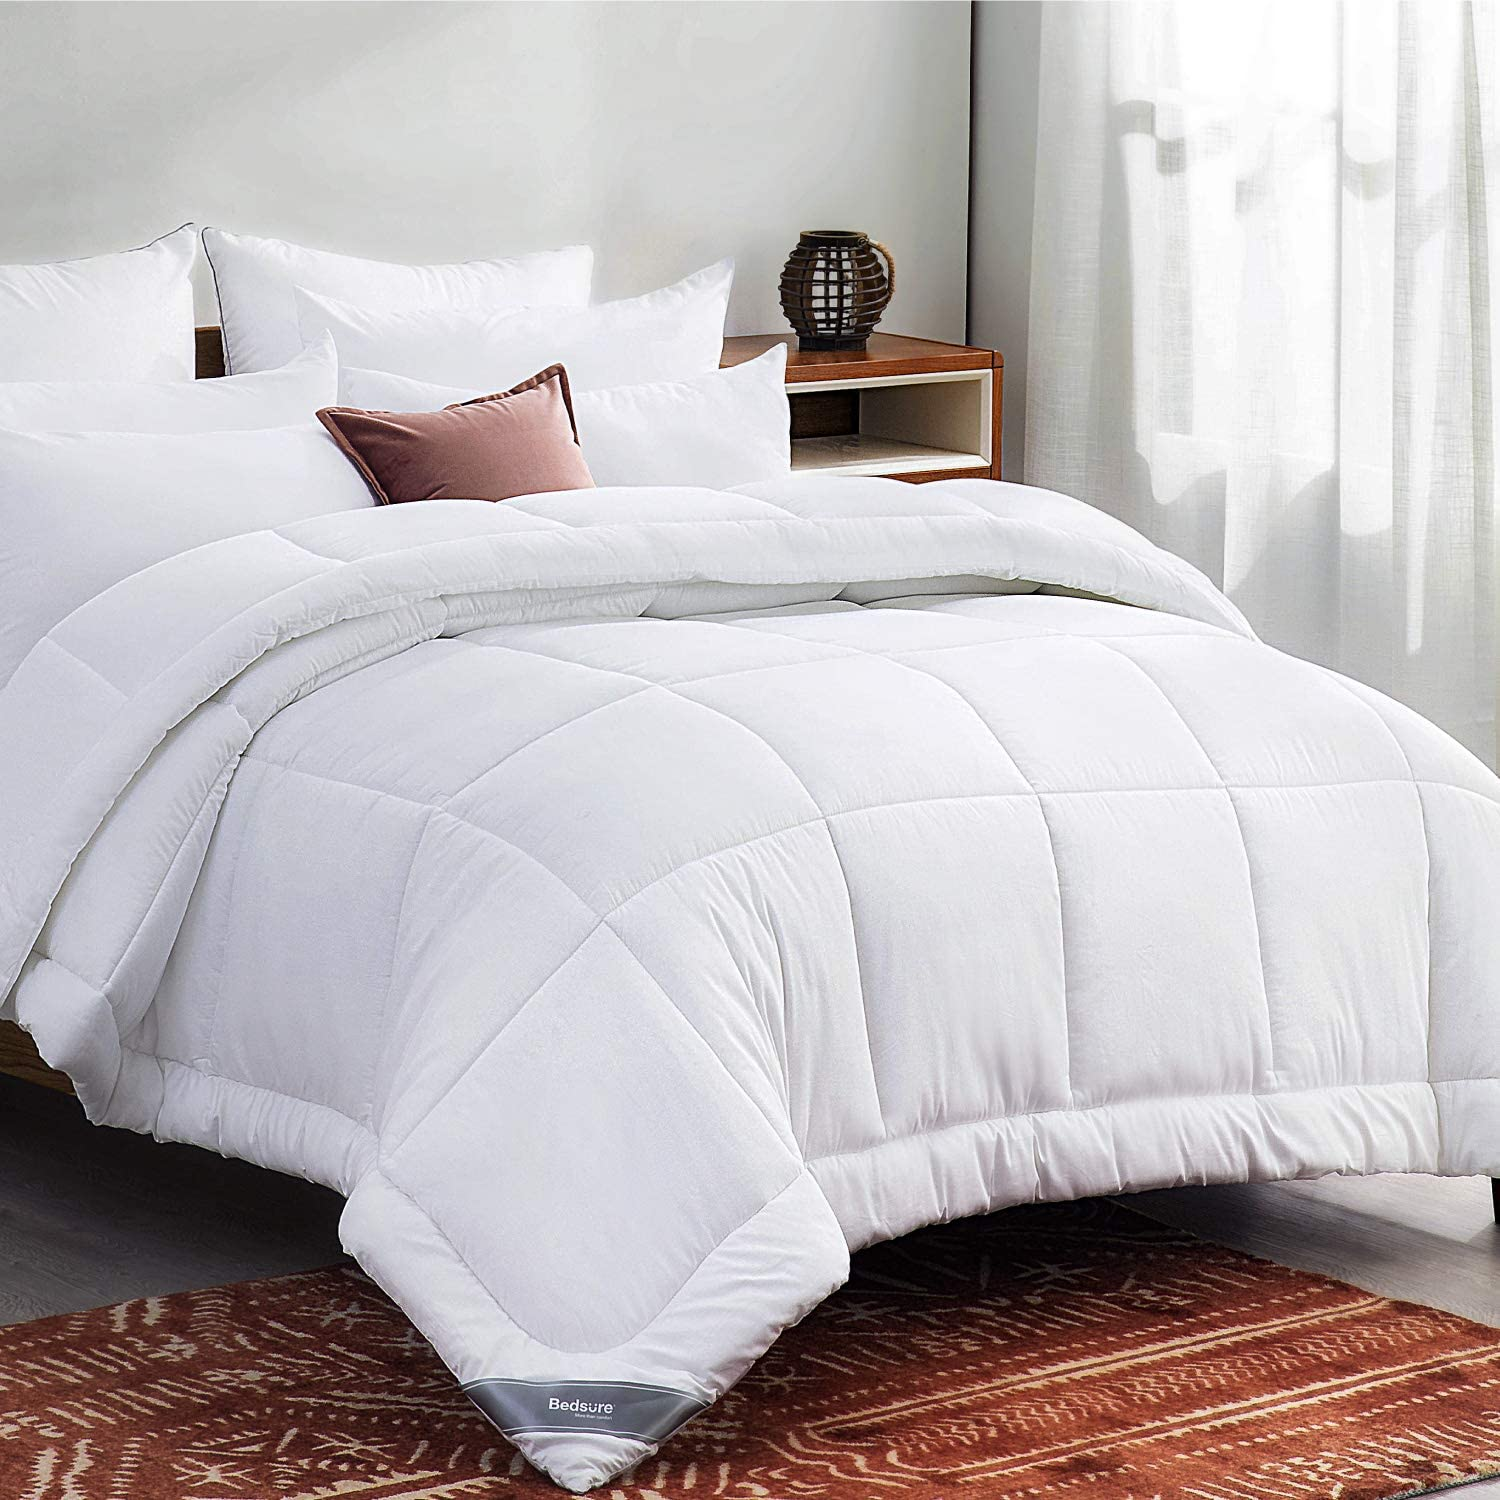 Bedsure White Down Alternative Comforter Queen- All-Season Quilted Comforter Duvet Insert with Corner Tabs - 300GSM Plush Microfiber Fill - Machine Washable